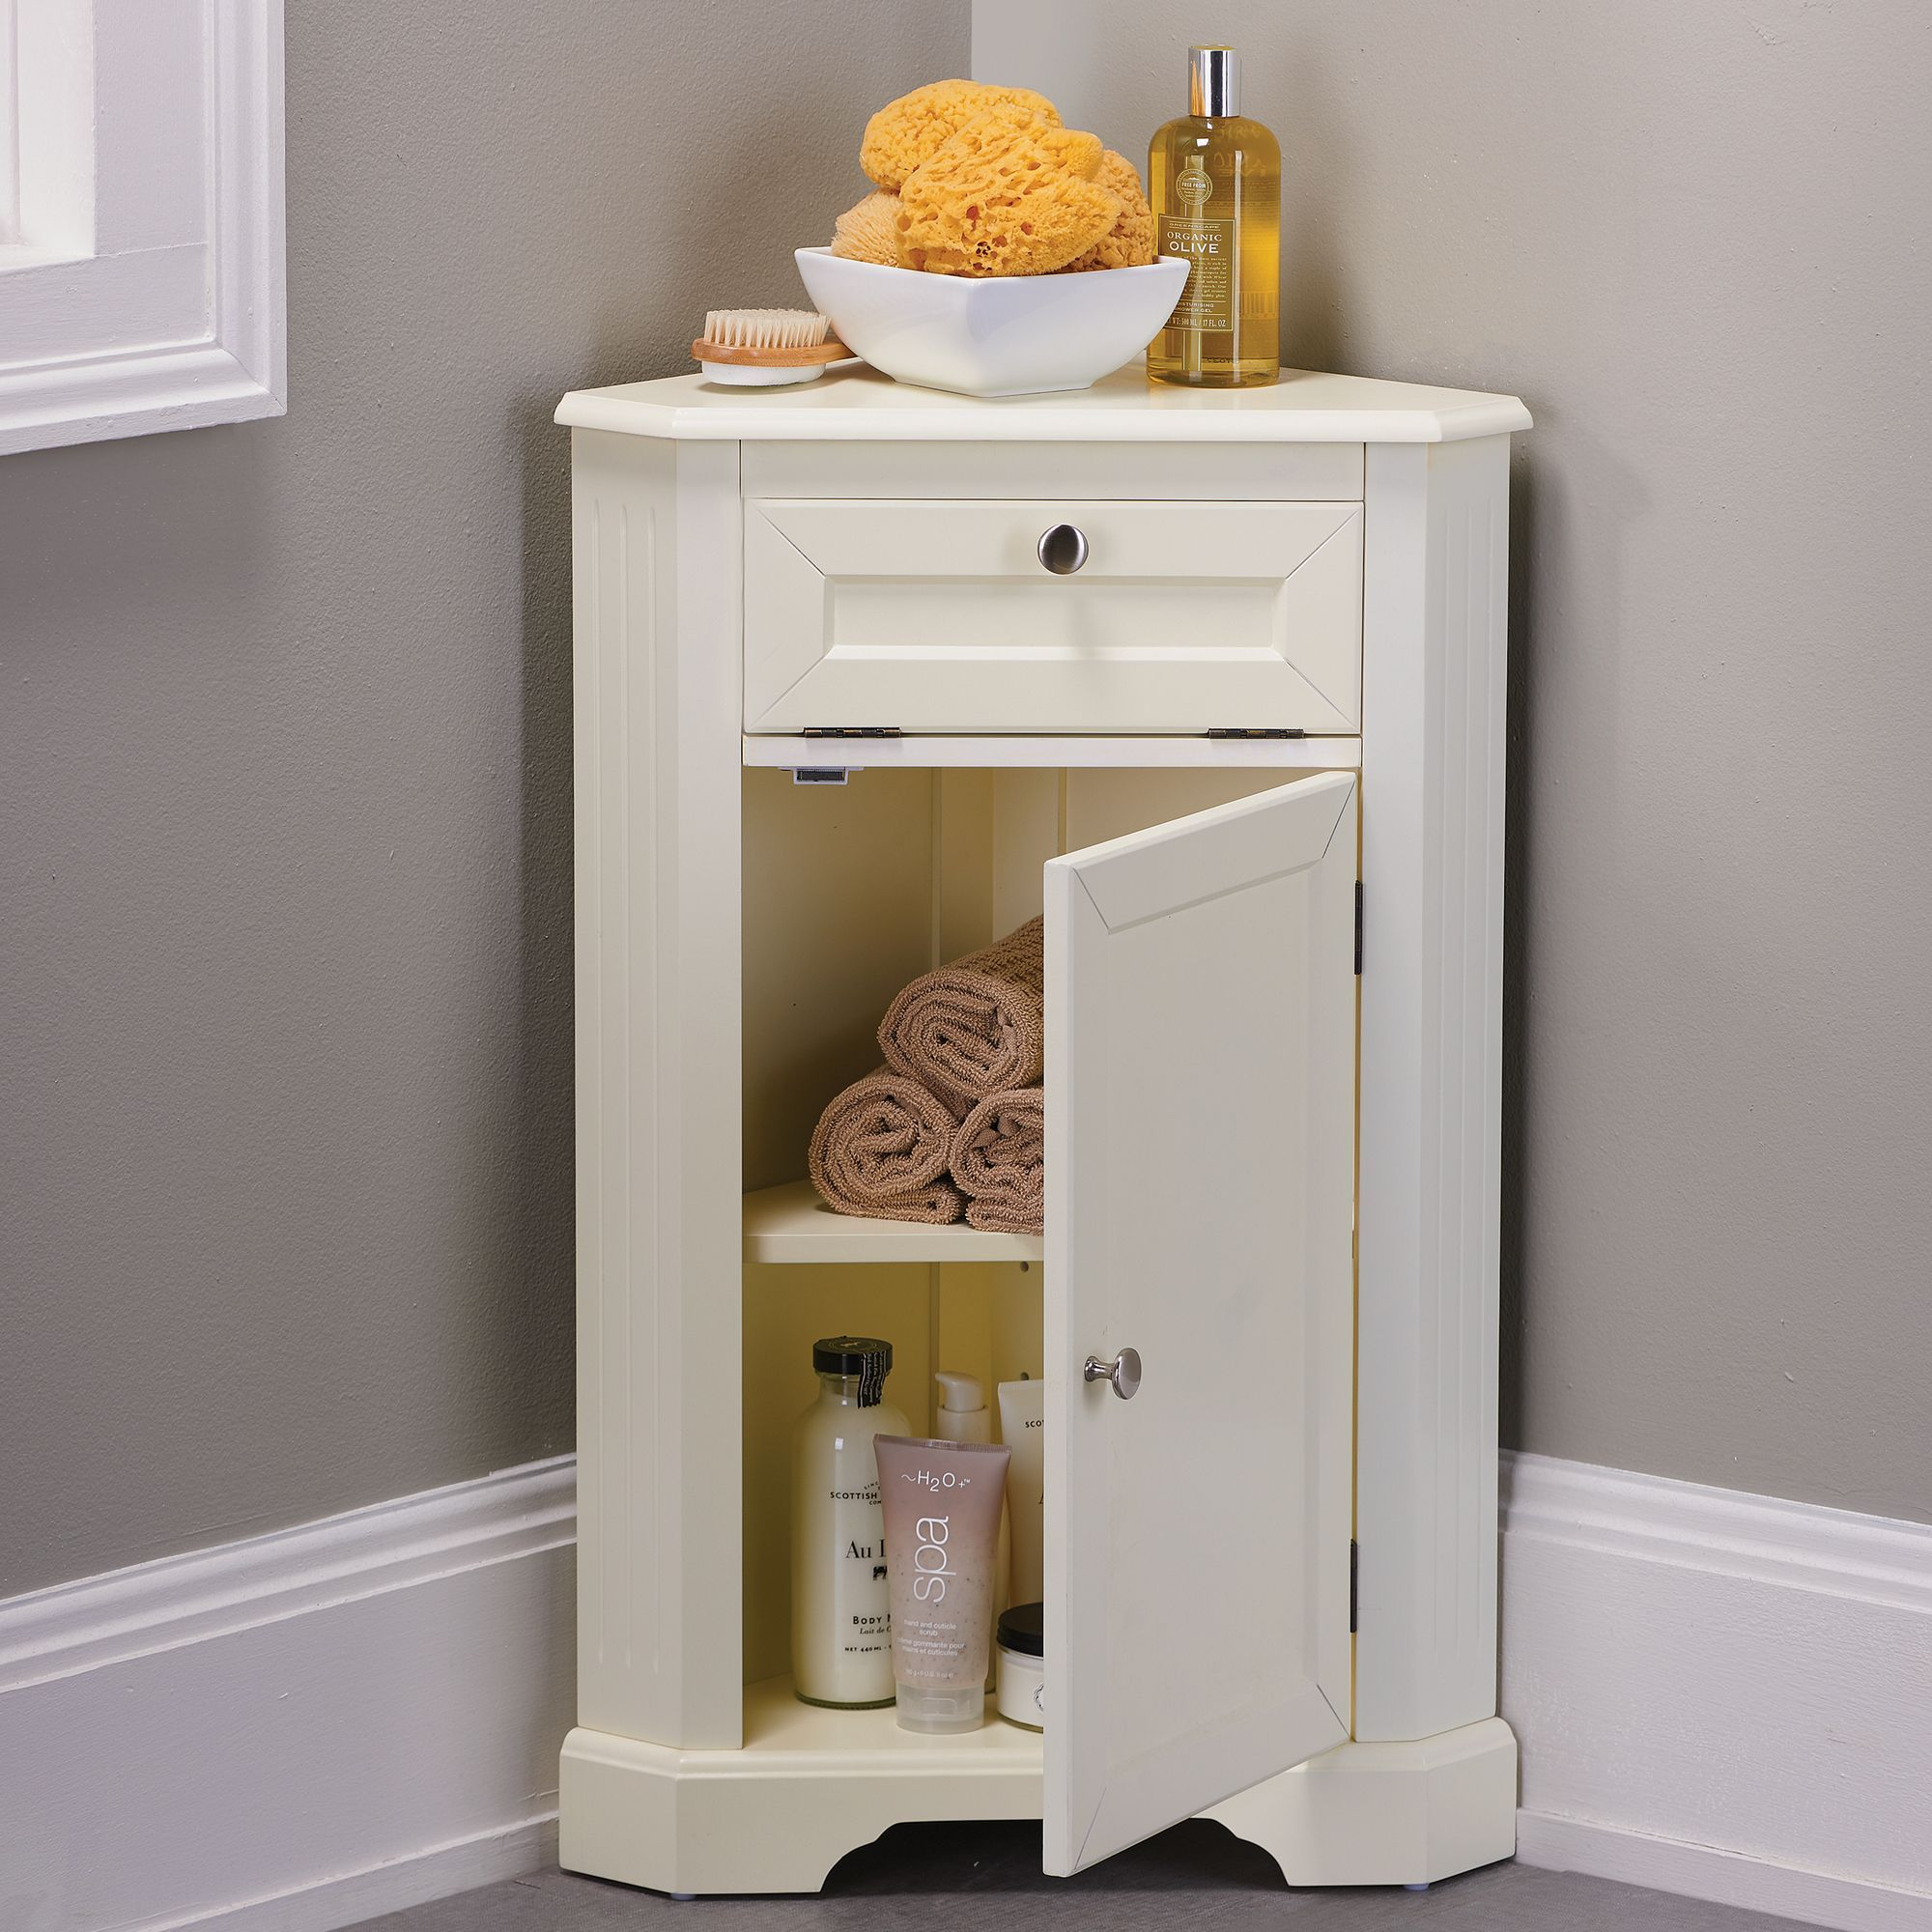 Bathroom cabinet storage solutions - Weatherby Bathroom Corner Storage Cabinet